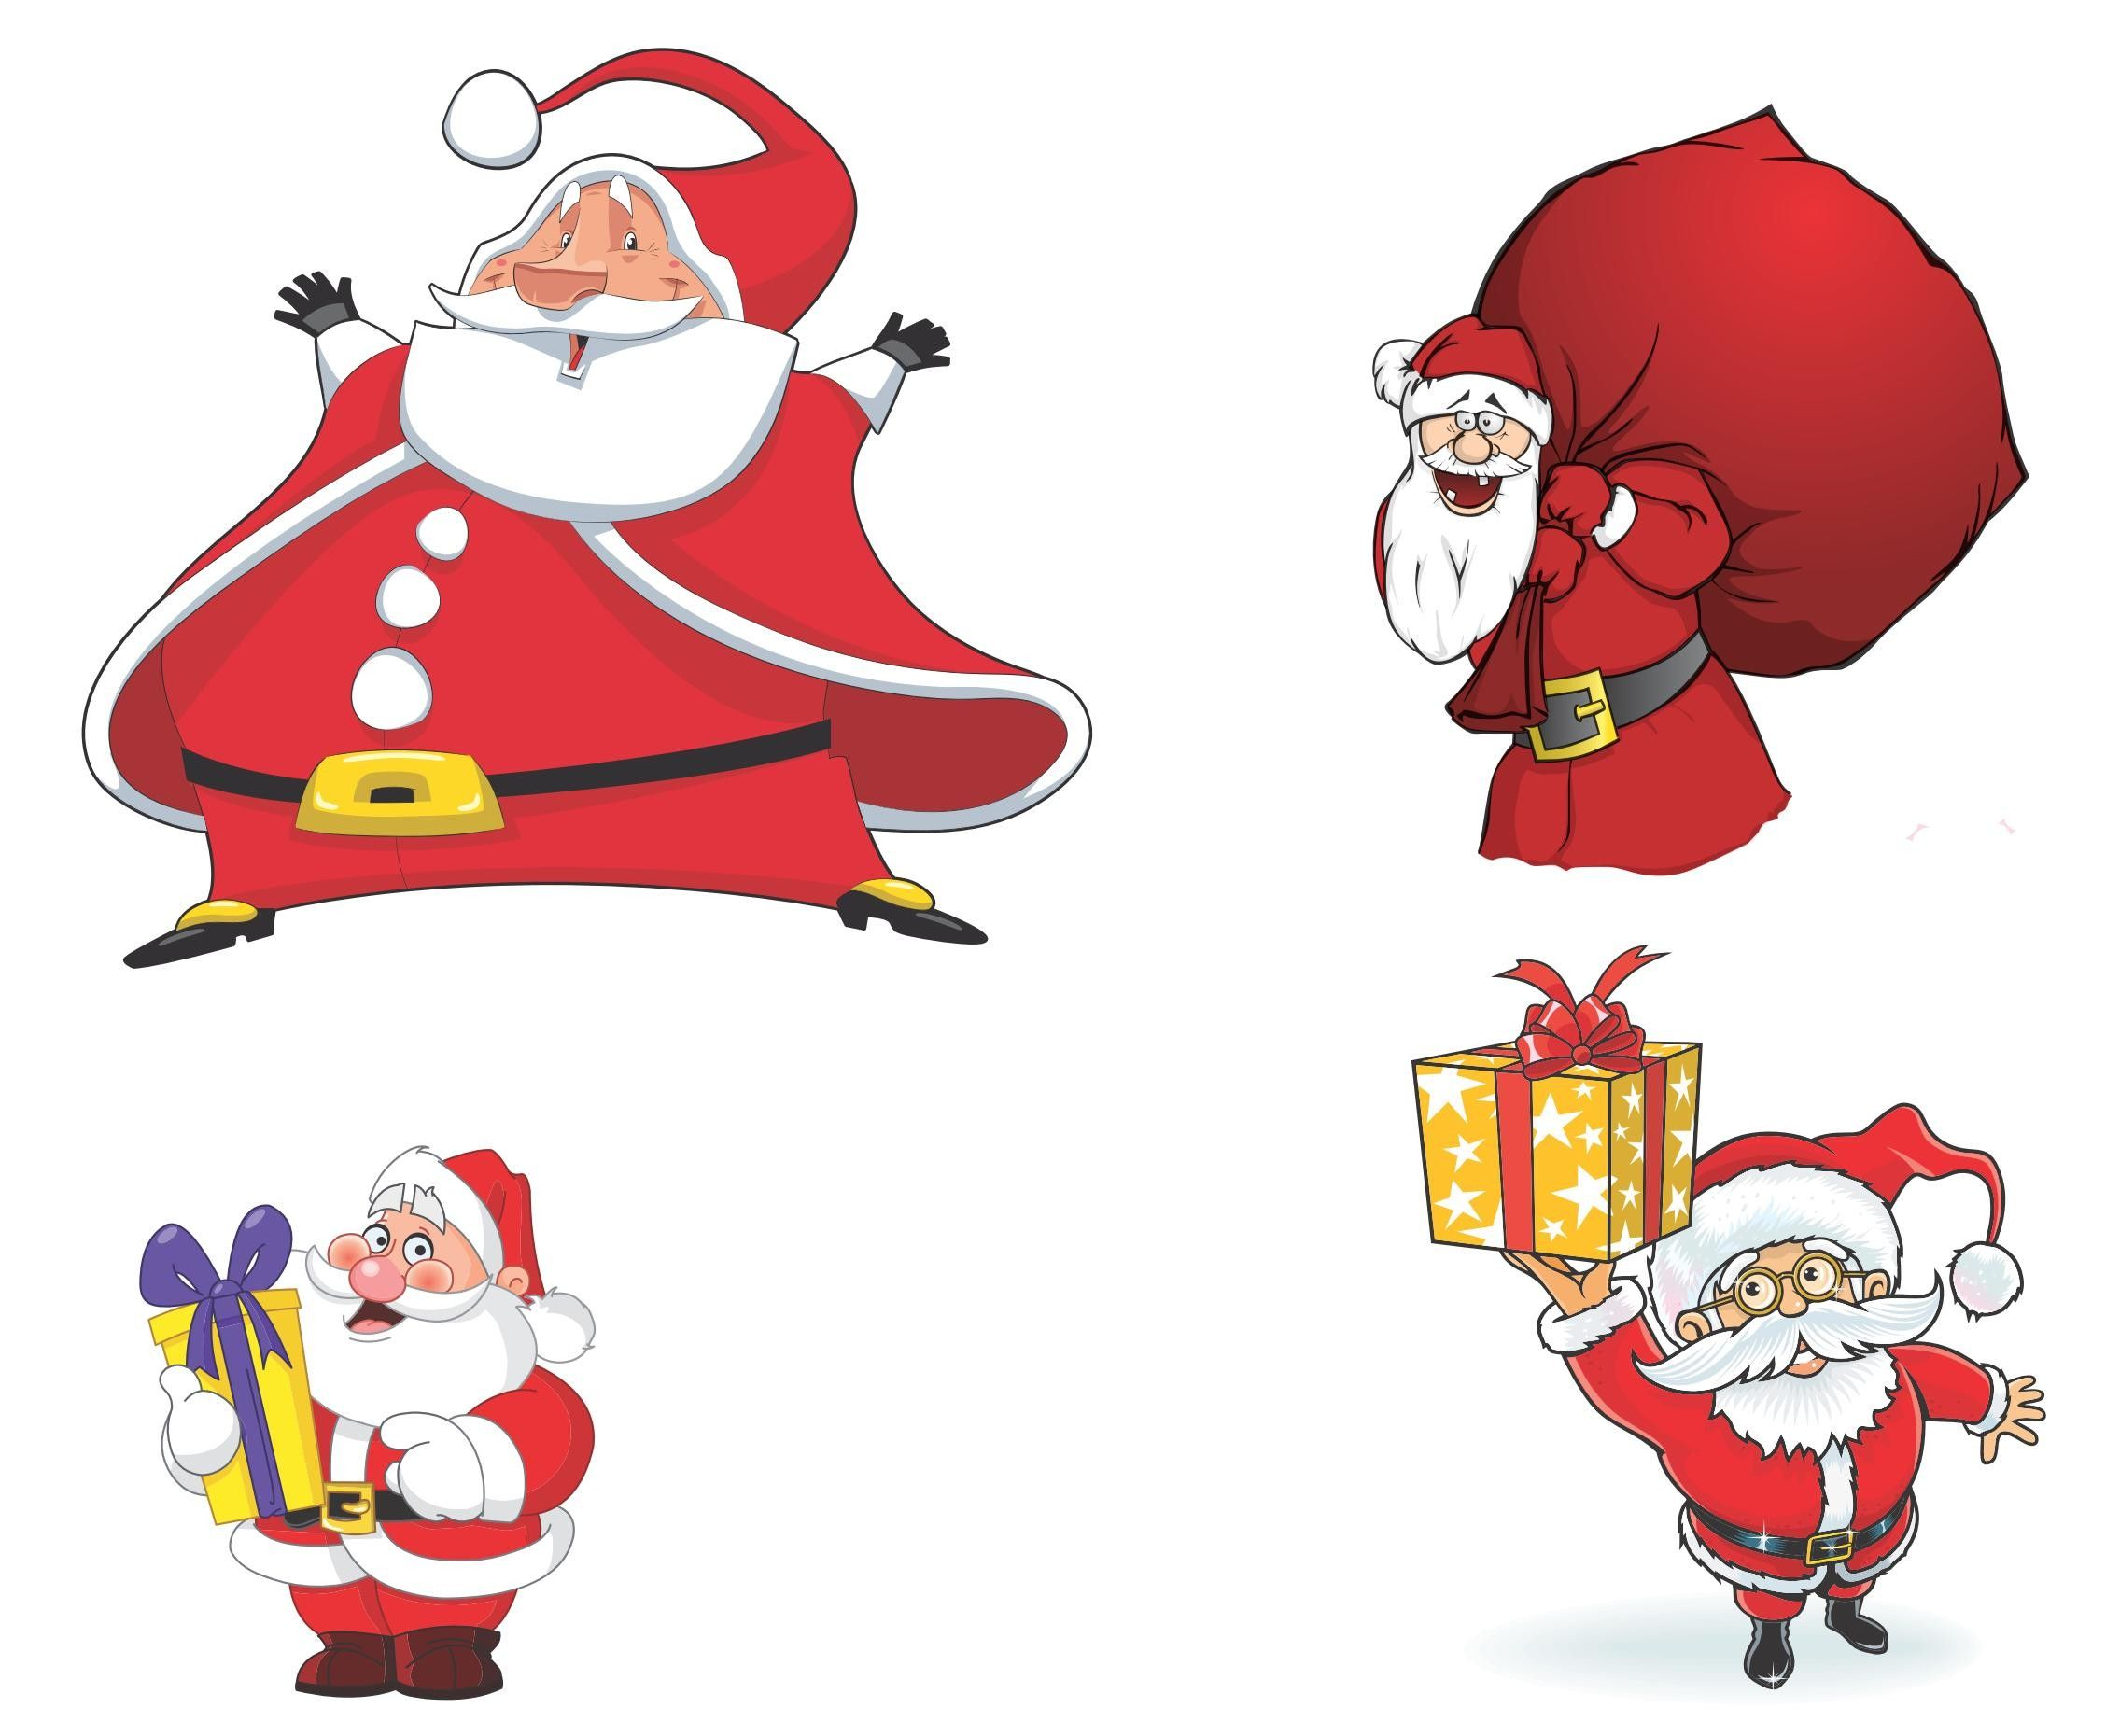 Celebrate clipart artwork. Cartoon santa claus vector